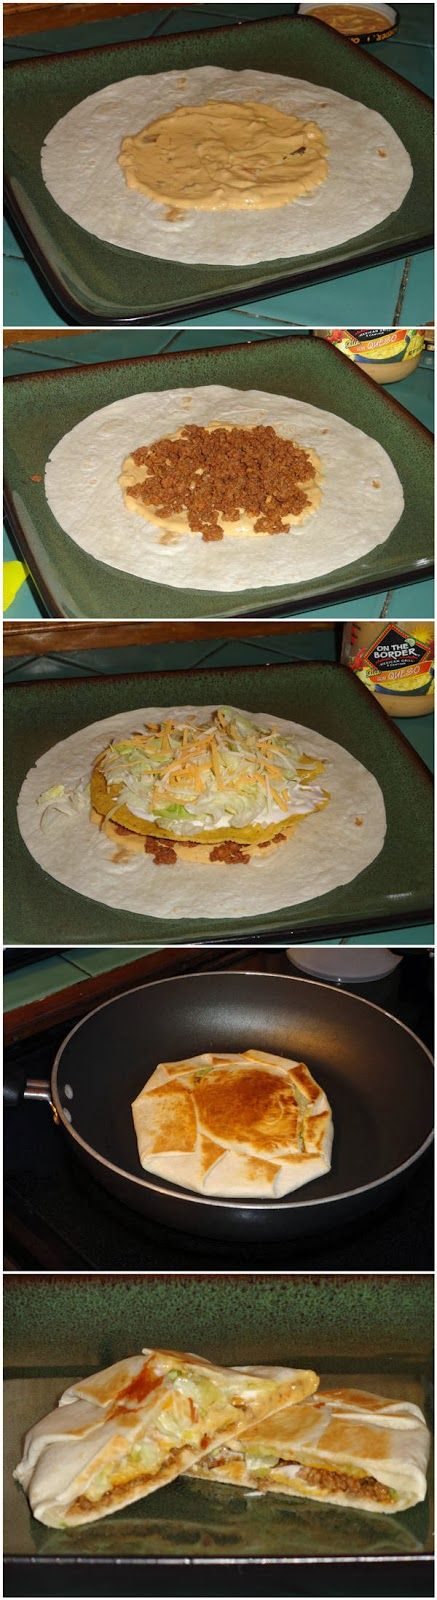 Yummy Crunchwrap Supremes: Sour Cream, Wraps Supreme, Crunchwrap Supreme, Mexicans Dinners, Yummy Crunchwrap, Crunches Wraps, Tacos Belle, Ground Turkey, Homemade Crunchwrap